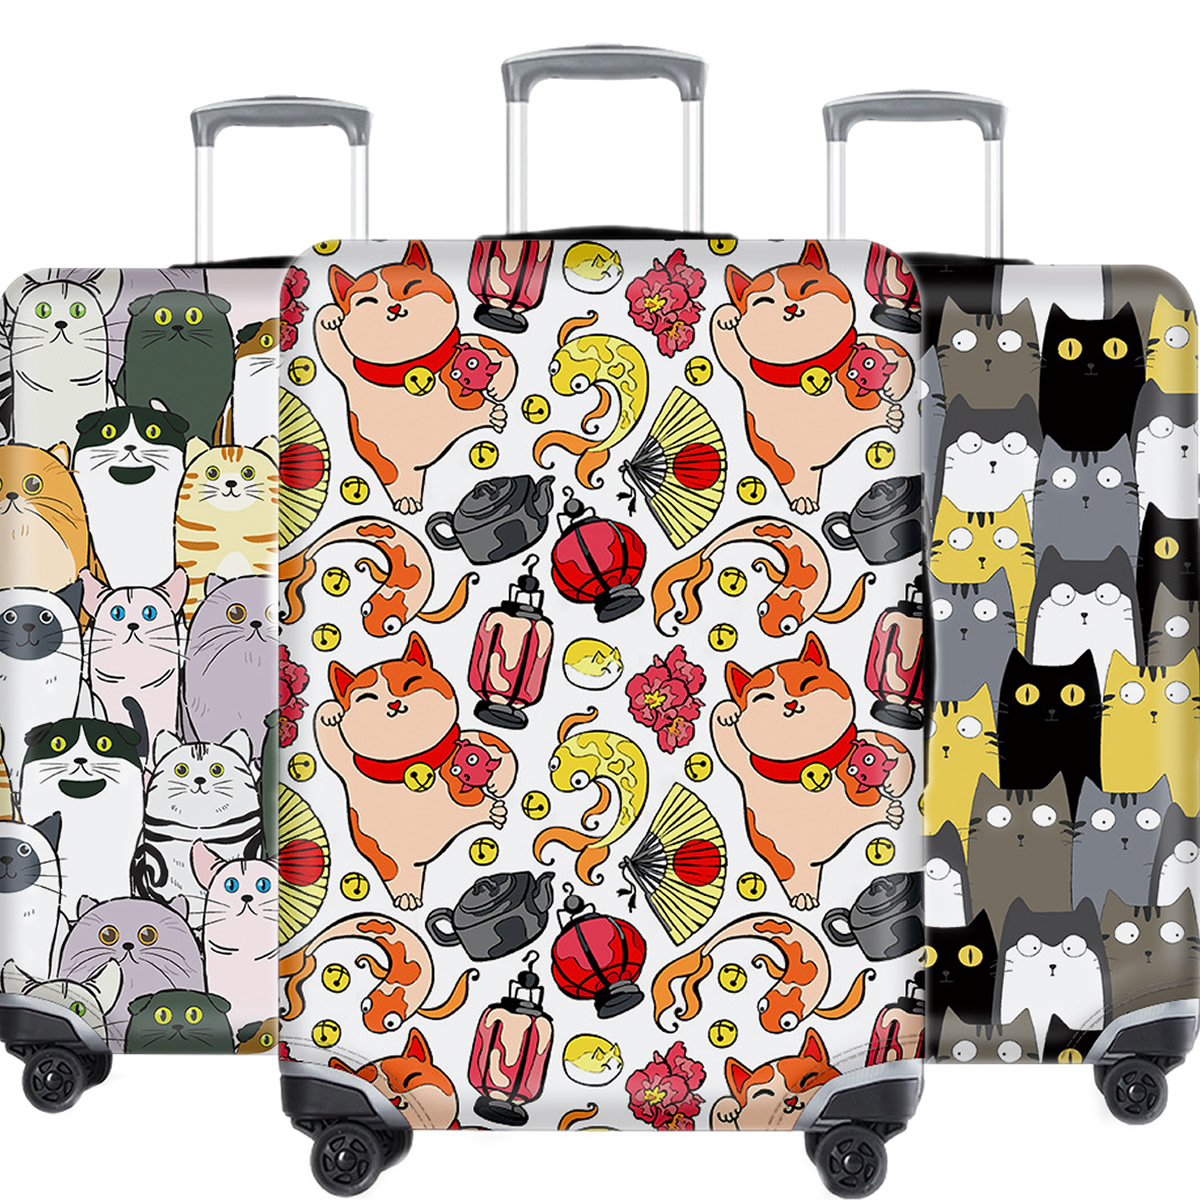 Cartoon Animal Suitcase Cover Travel Accessories Kawaii Waterproof Elastic Luggage Case Protective Dust Cover Apply 18-32Inch